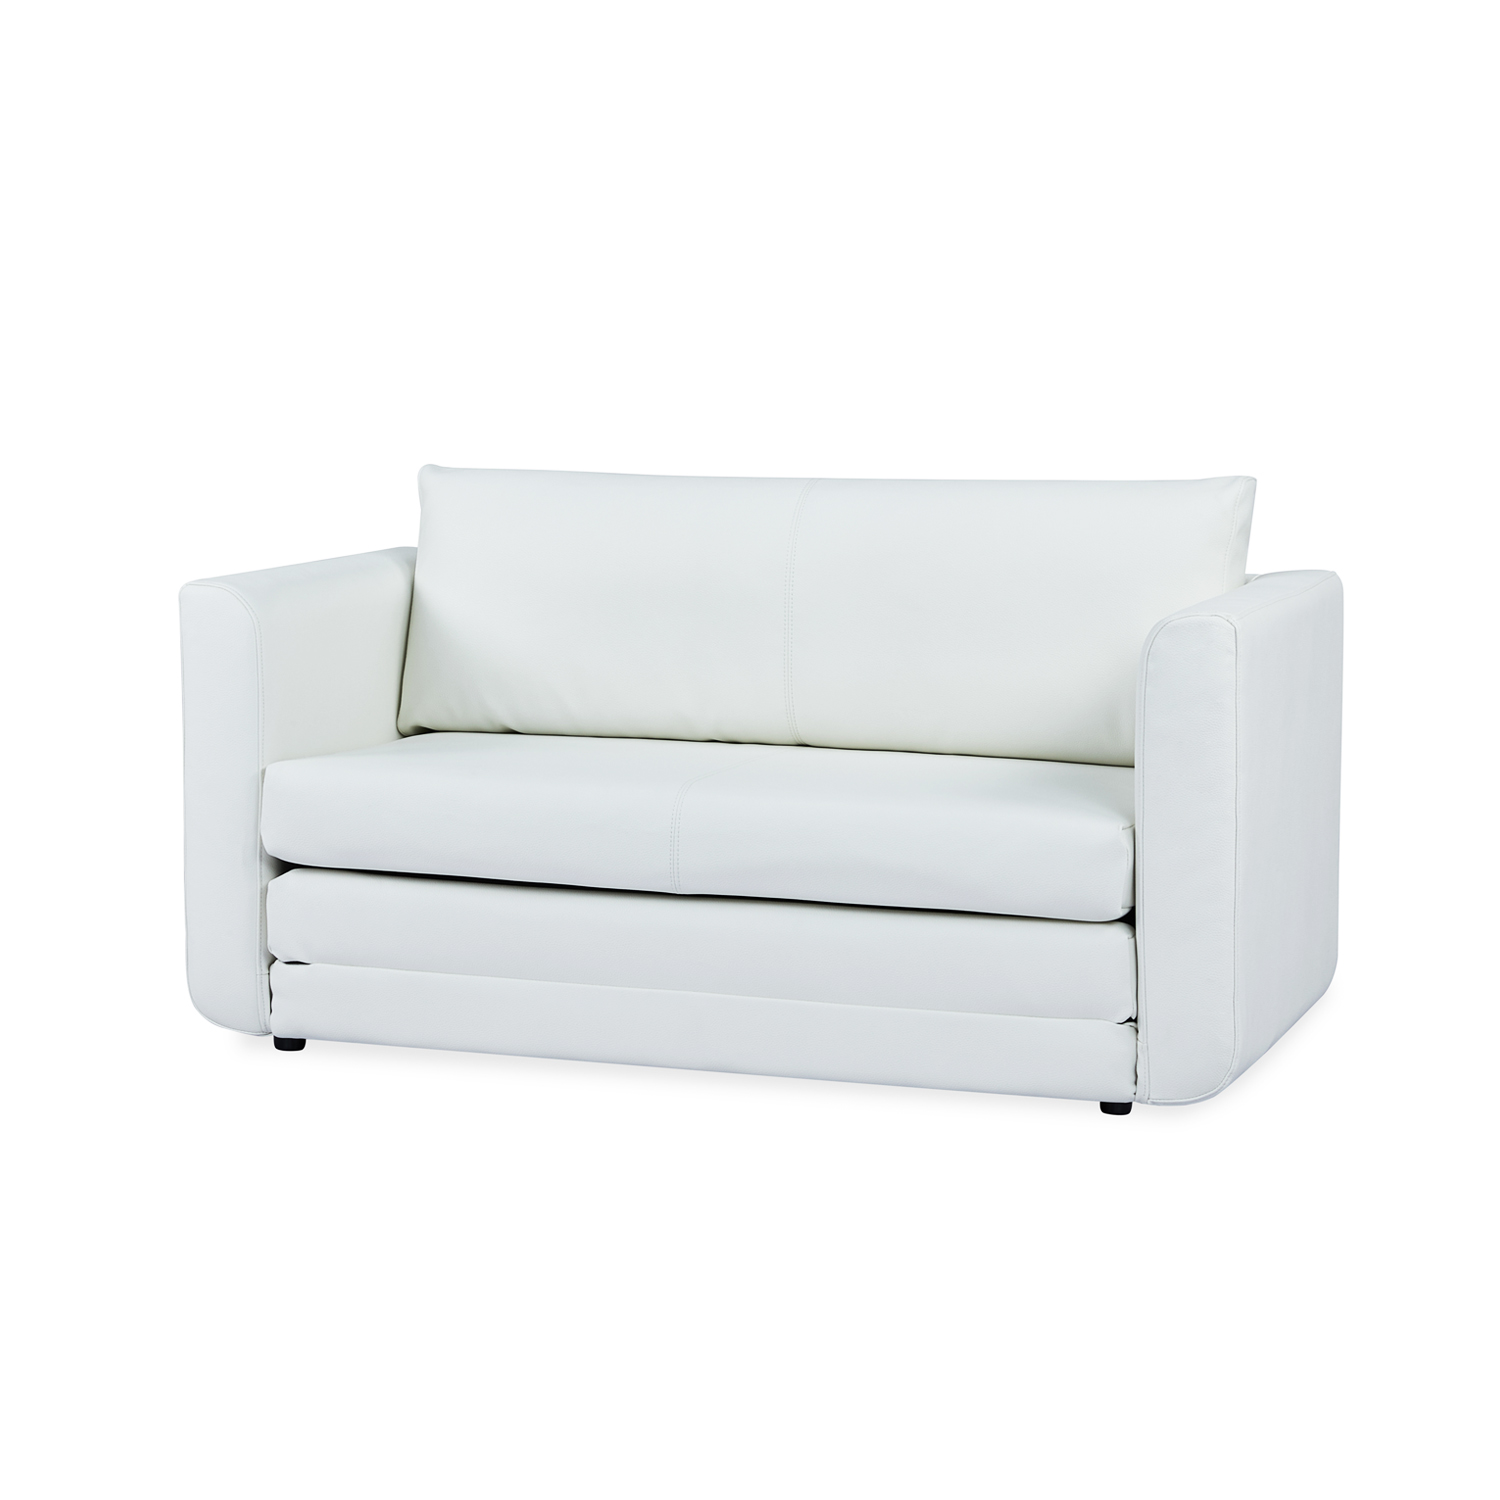 Furniture Source Philippines | Sandnes Sofabed (White Faux Leather)